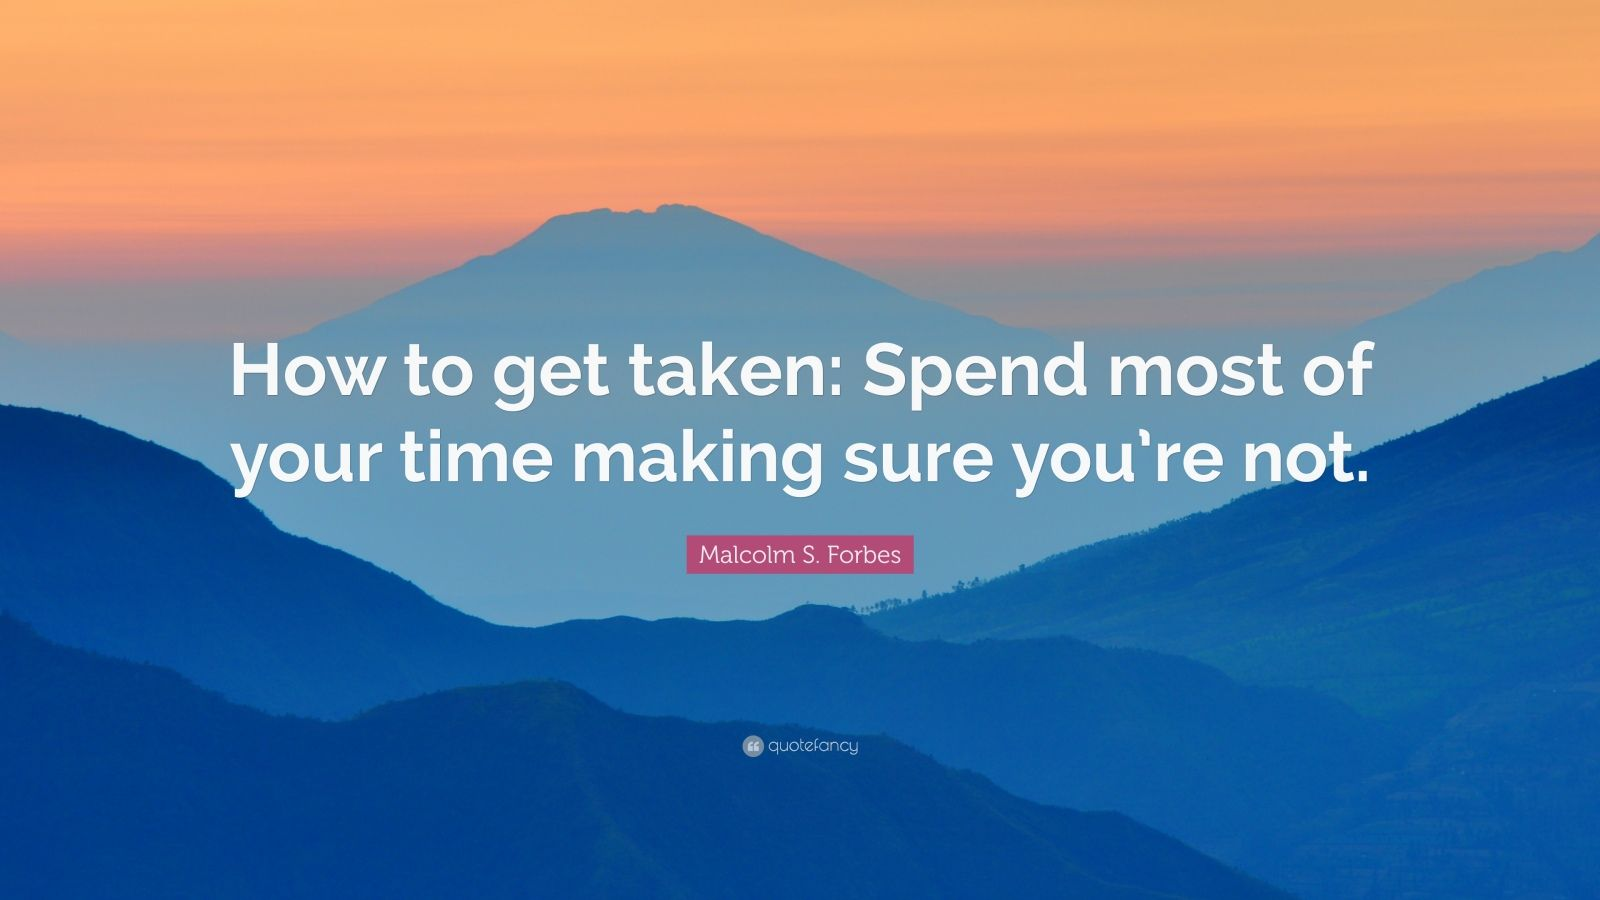 """Malcolm S. Forbes Quote: """"How to get taken: Spend most of your time making sure you're not."""""""